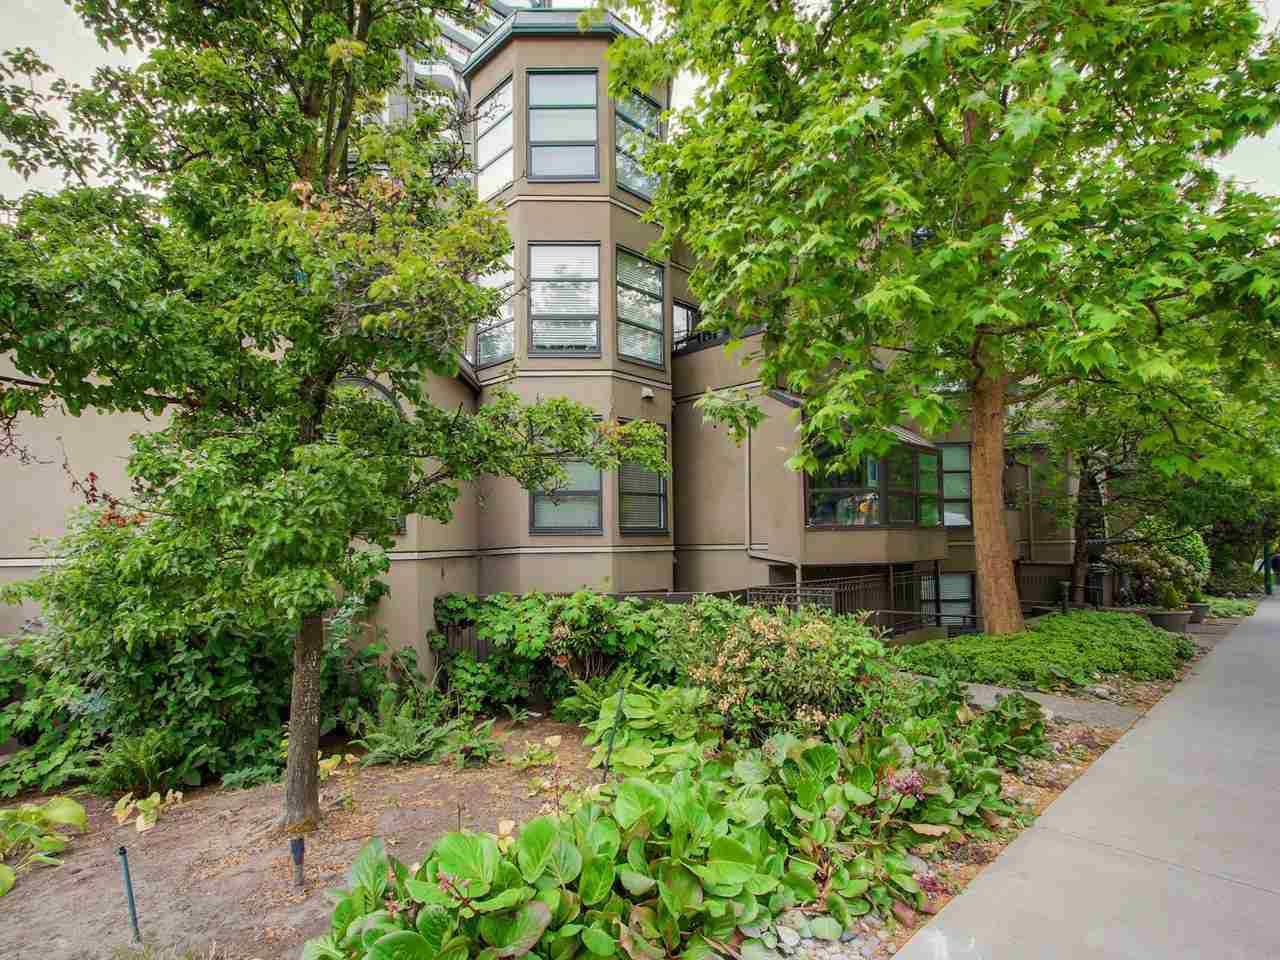 Main Photo: 208 1106 PACIFIC STREET in Vancouver: West End VW Condo for sale (Vancouver West)  : MLS®# R2072898